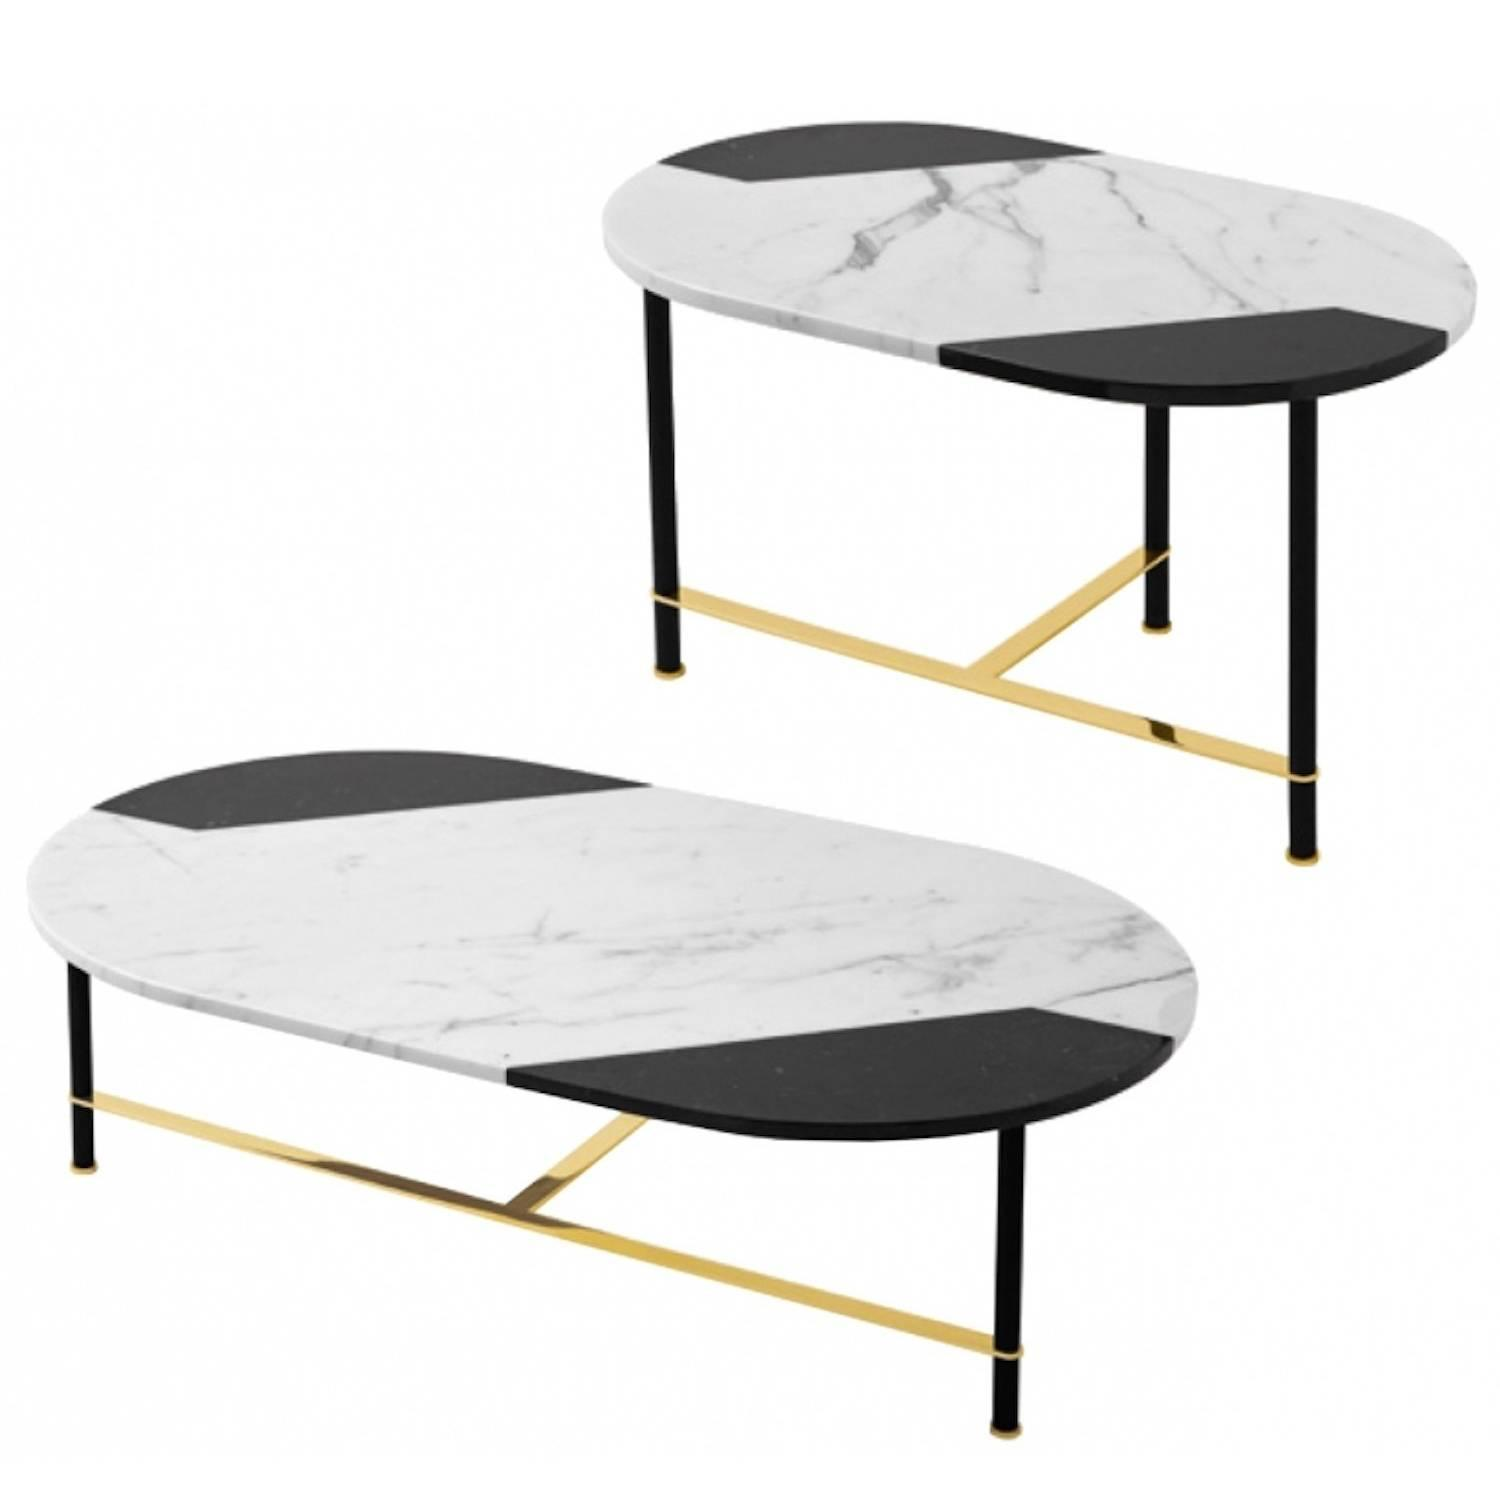 Marble Nesting Tables and Stacking Tables 11 For Sale at 1stdibs